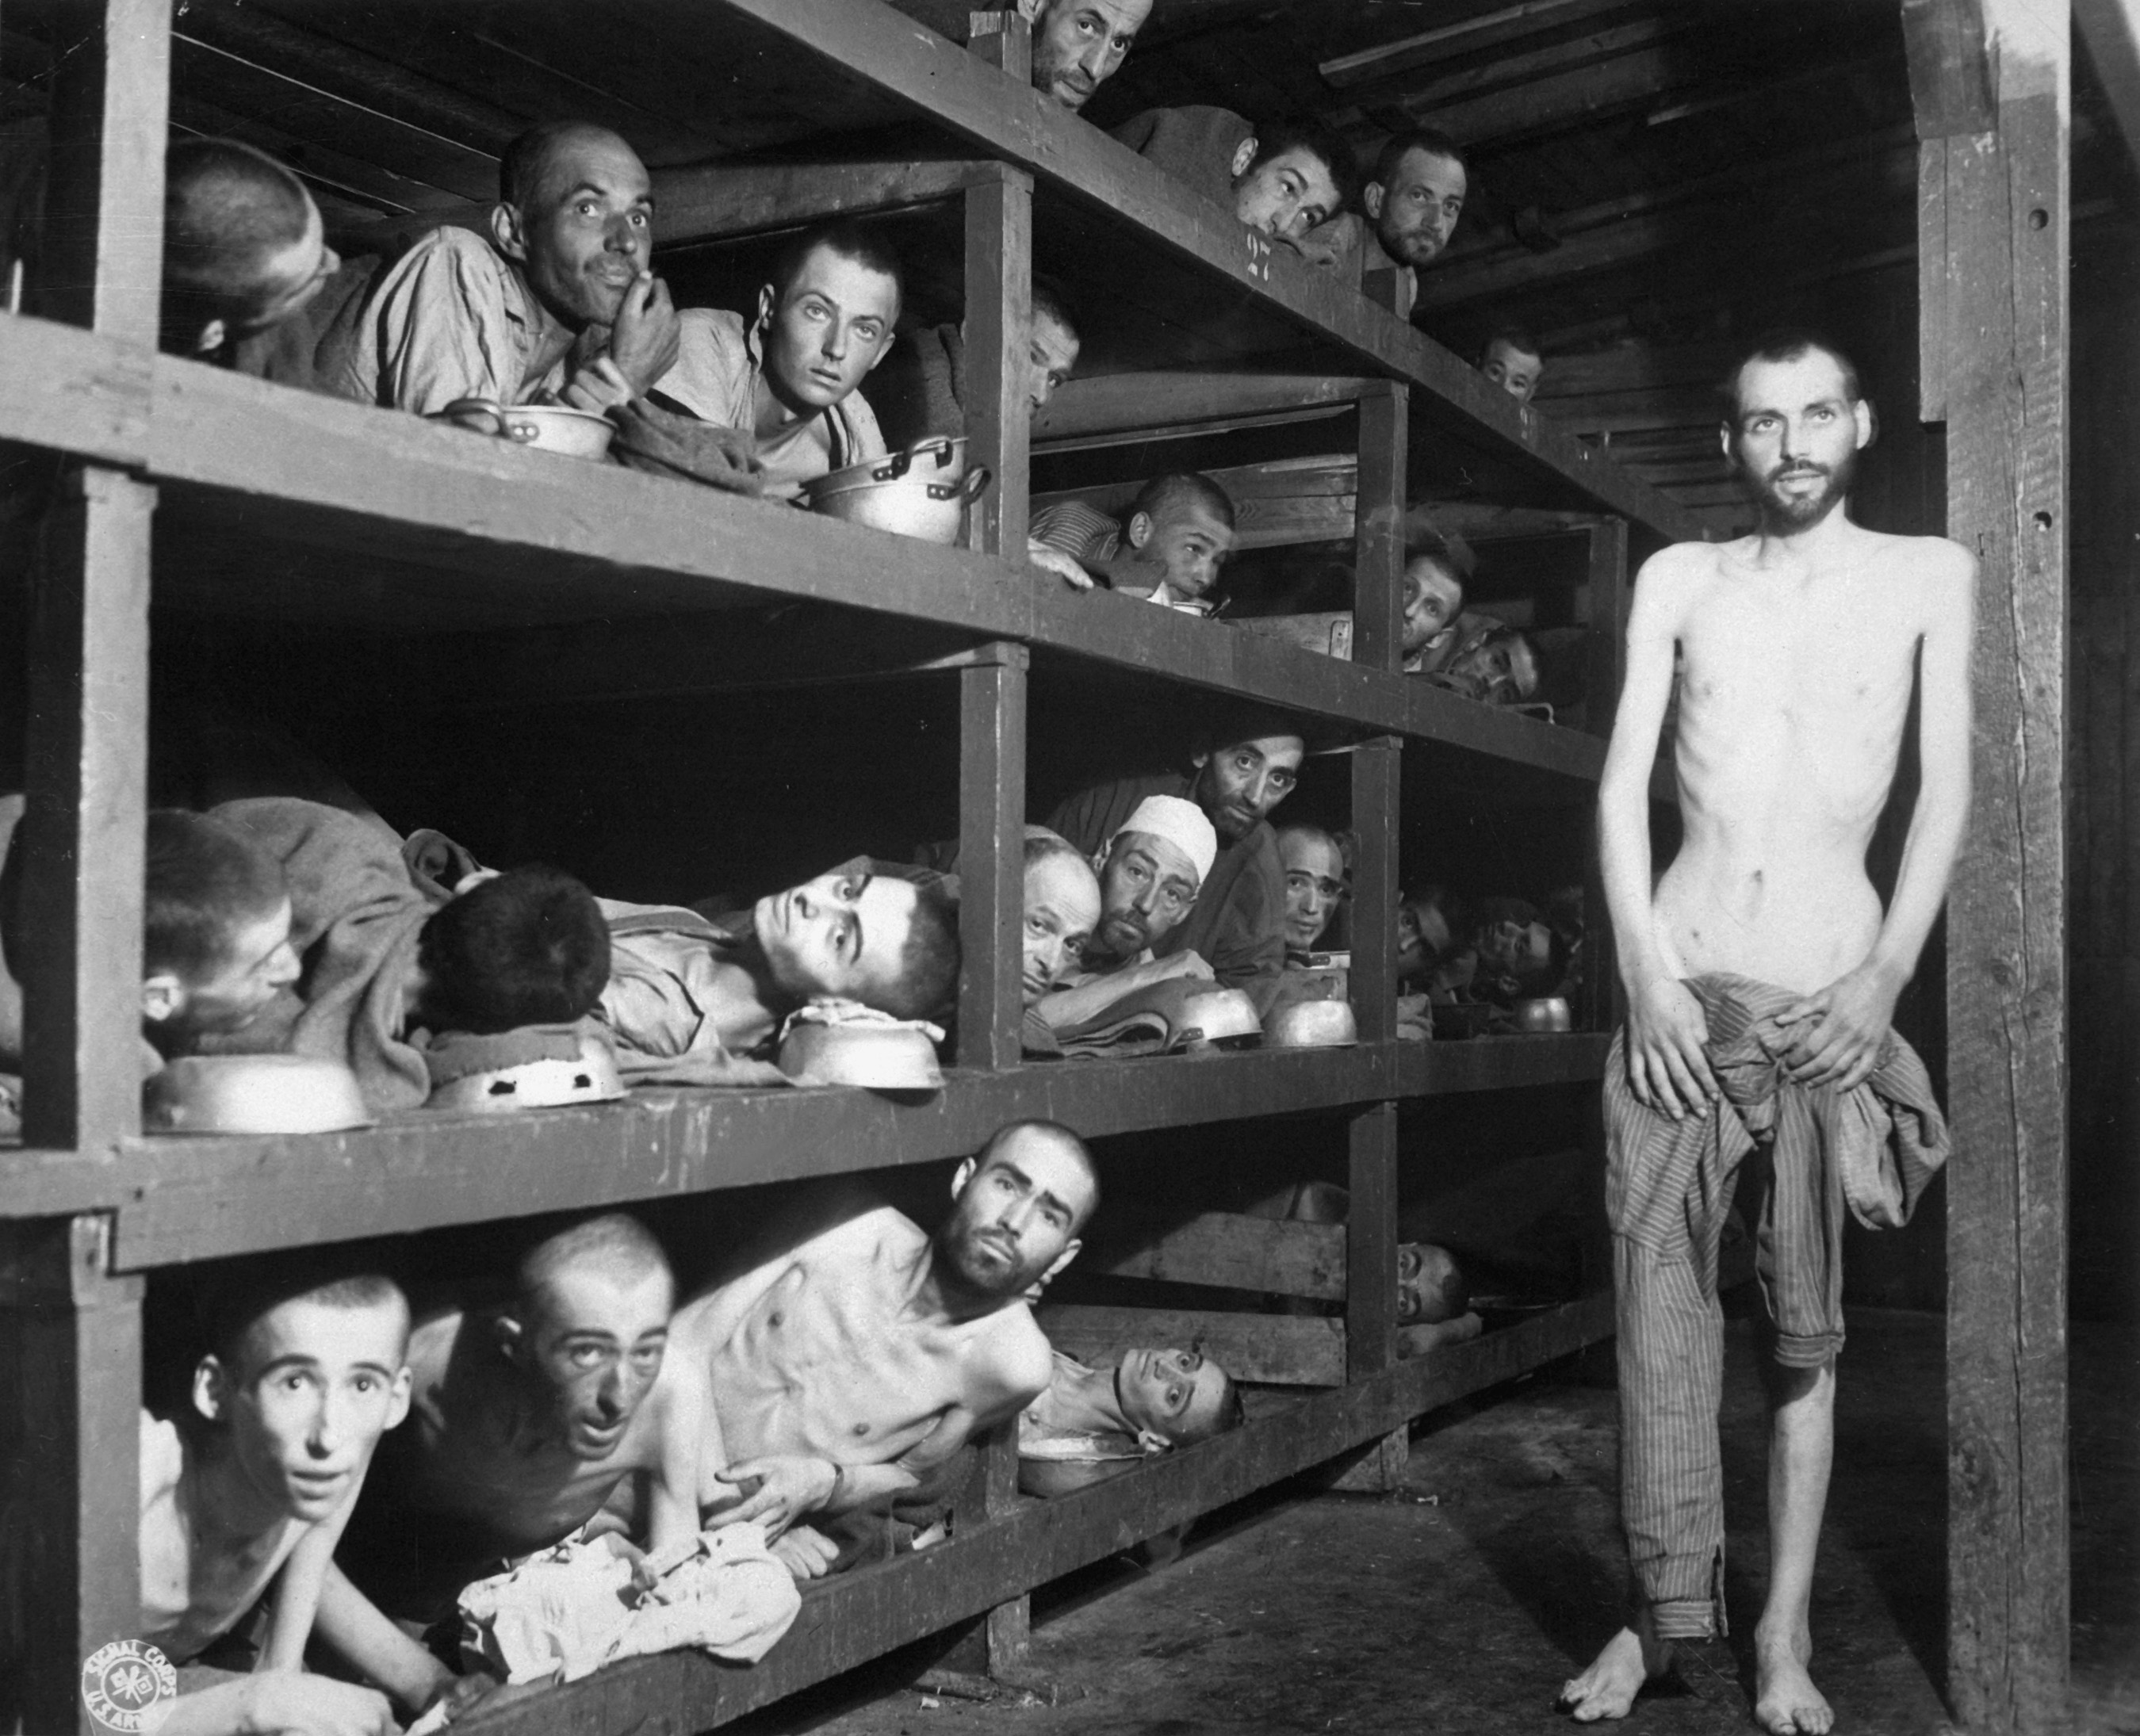 holocaust a result of institutional or functionalist policy of germany Joshua murgatroyd assess the view that the holocaust was the result of a the other main school is the functionalist view assess the view that the holocaust.